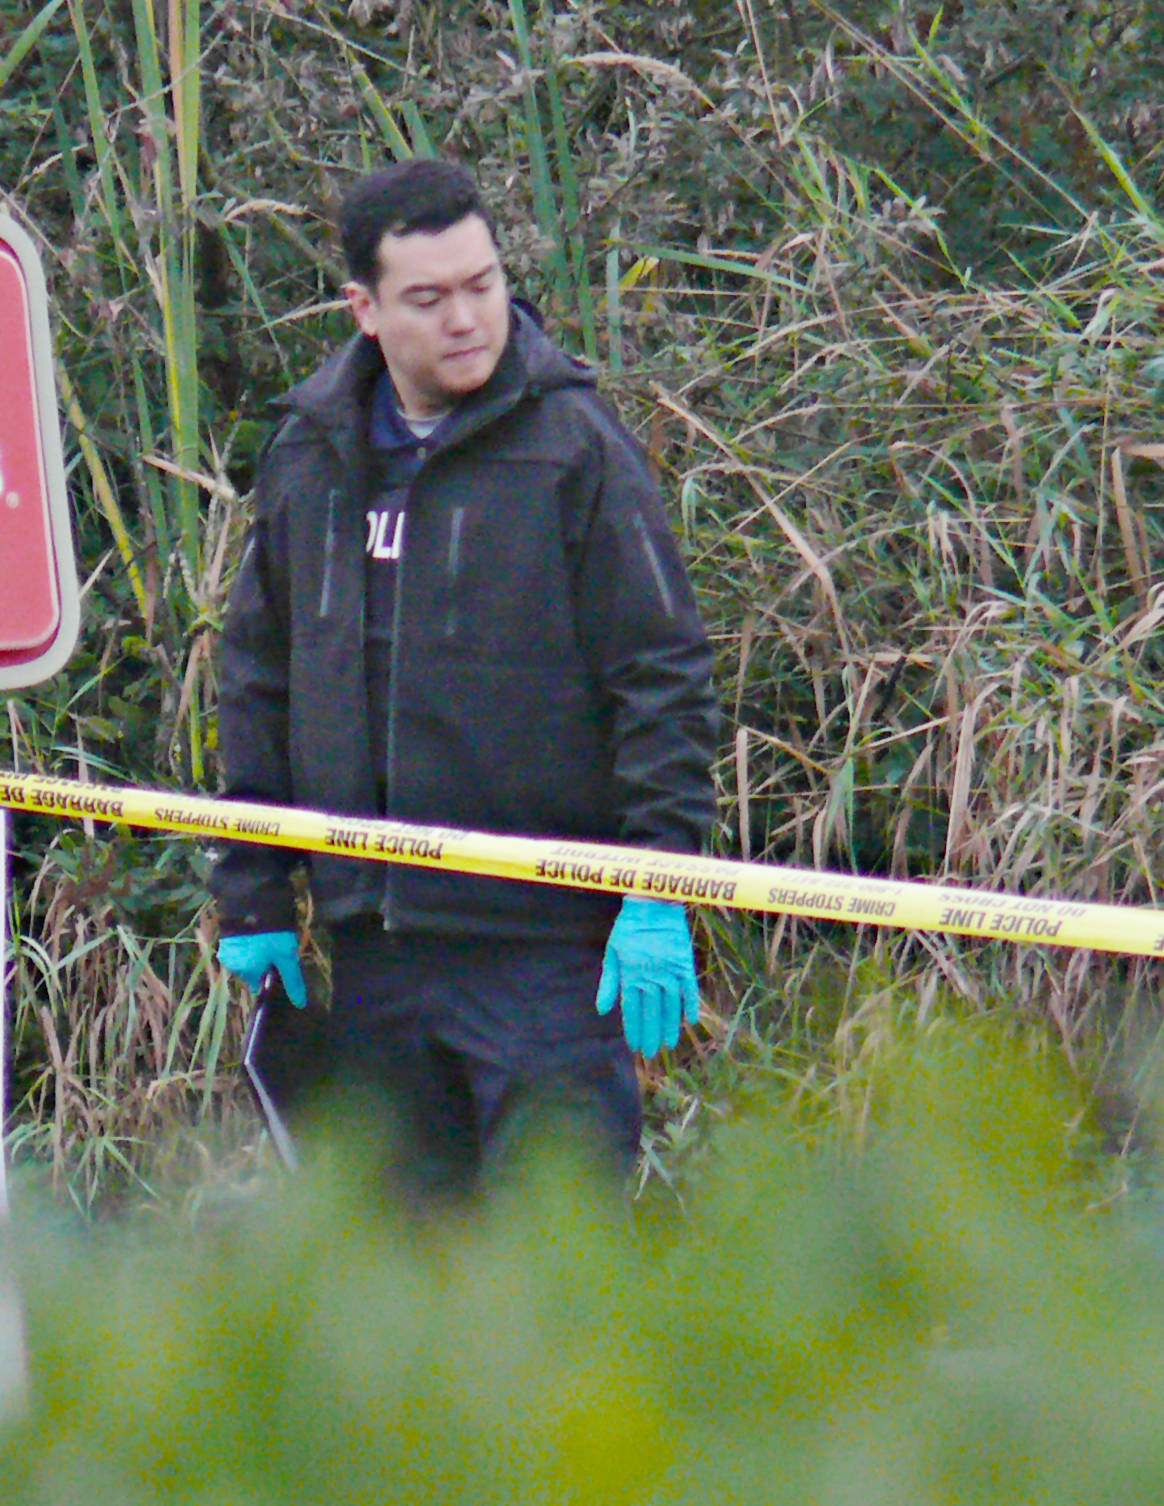 'Traumatic': Homicide team investigating scene of Langley's first 2019 fatal shooting